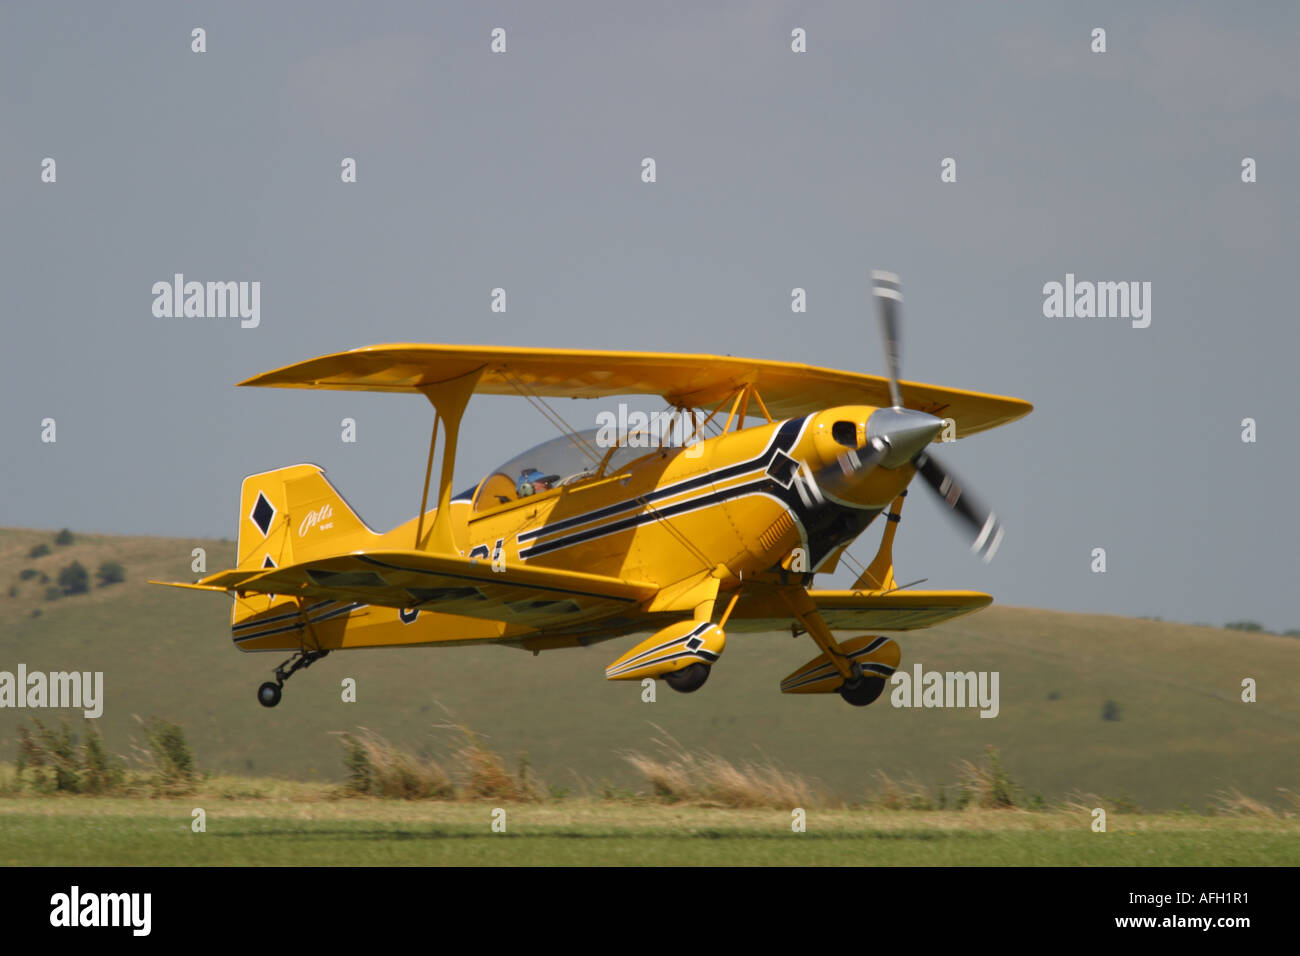 The Pitts S2 Special is a small acrobatic aerobatic precision flying competition airplane seen here landing on a grass runway - Stock Image